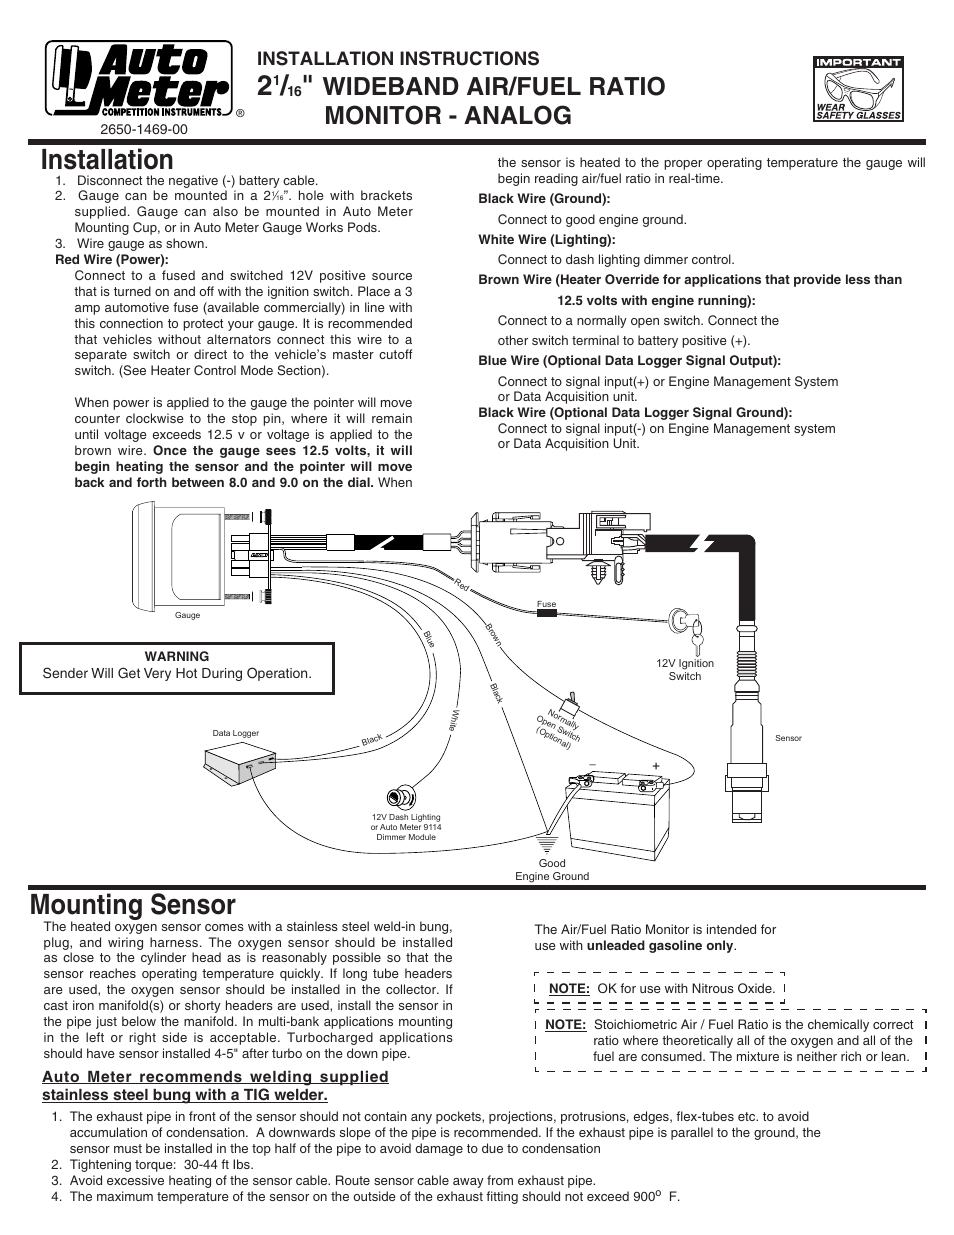 Auto Meter 7570 User Manual | 2 pages | Also for: 3870, 8070, 5970 on water meter installation diagram, auto meter switch, auto meter ford, auto meter toyota, auto ammeter wiring, pro comp light installation diagram, auto meter installation, auto meter clock,